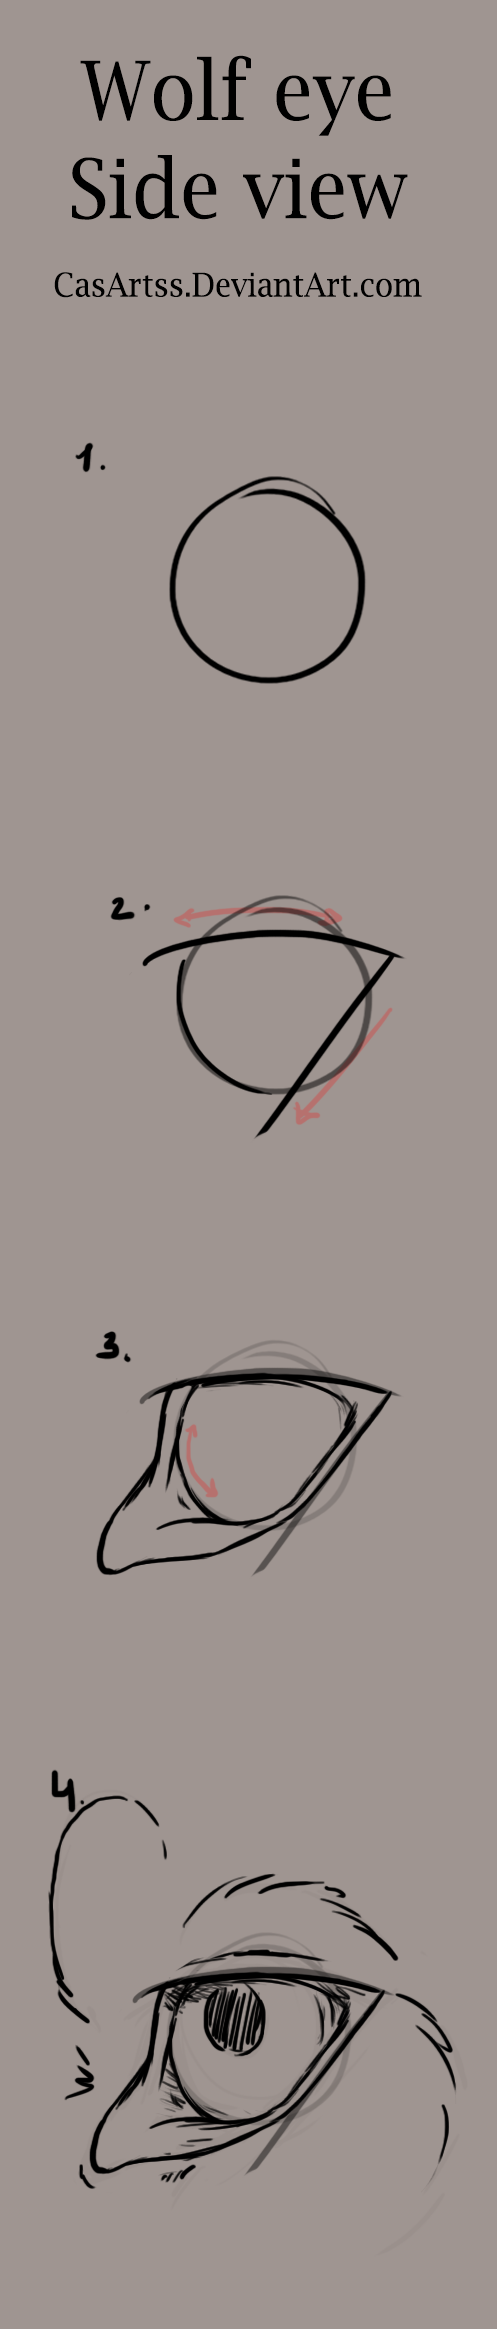 Wolf eye tutorial side view by casartss on deviantart wolf eye tutorial side view by casartss ccuart Image collections